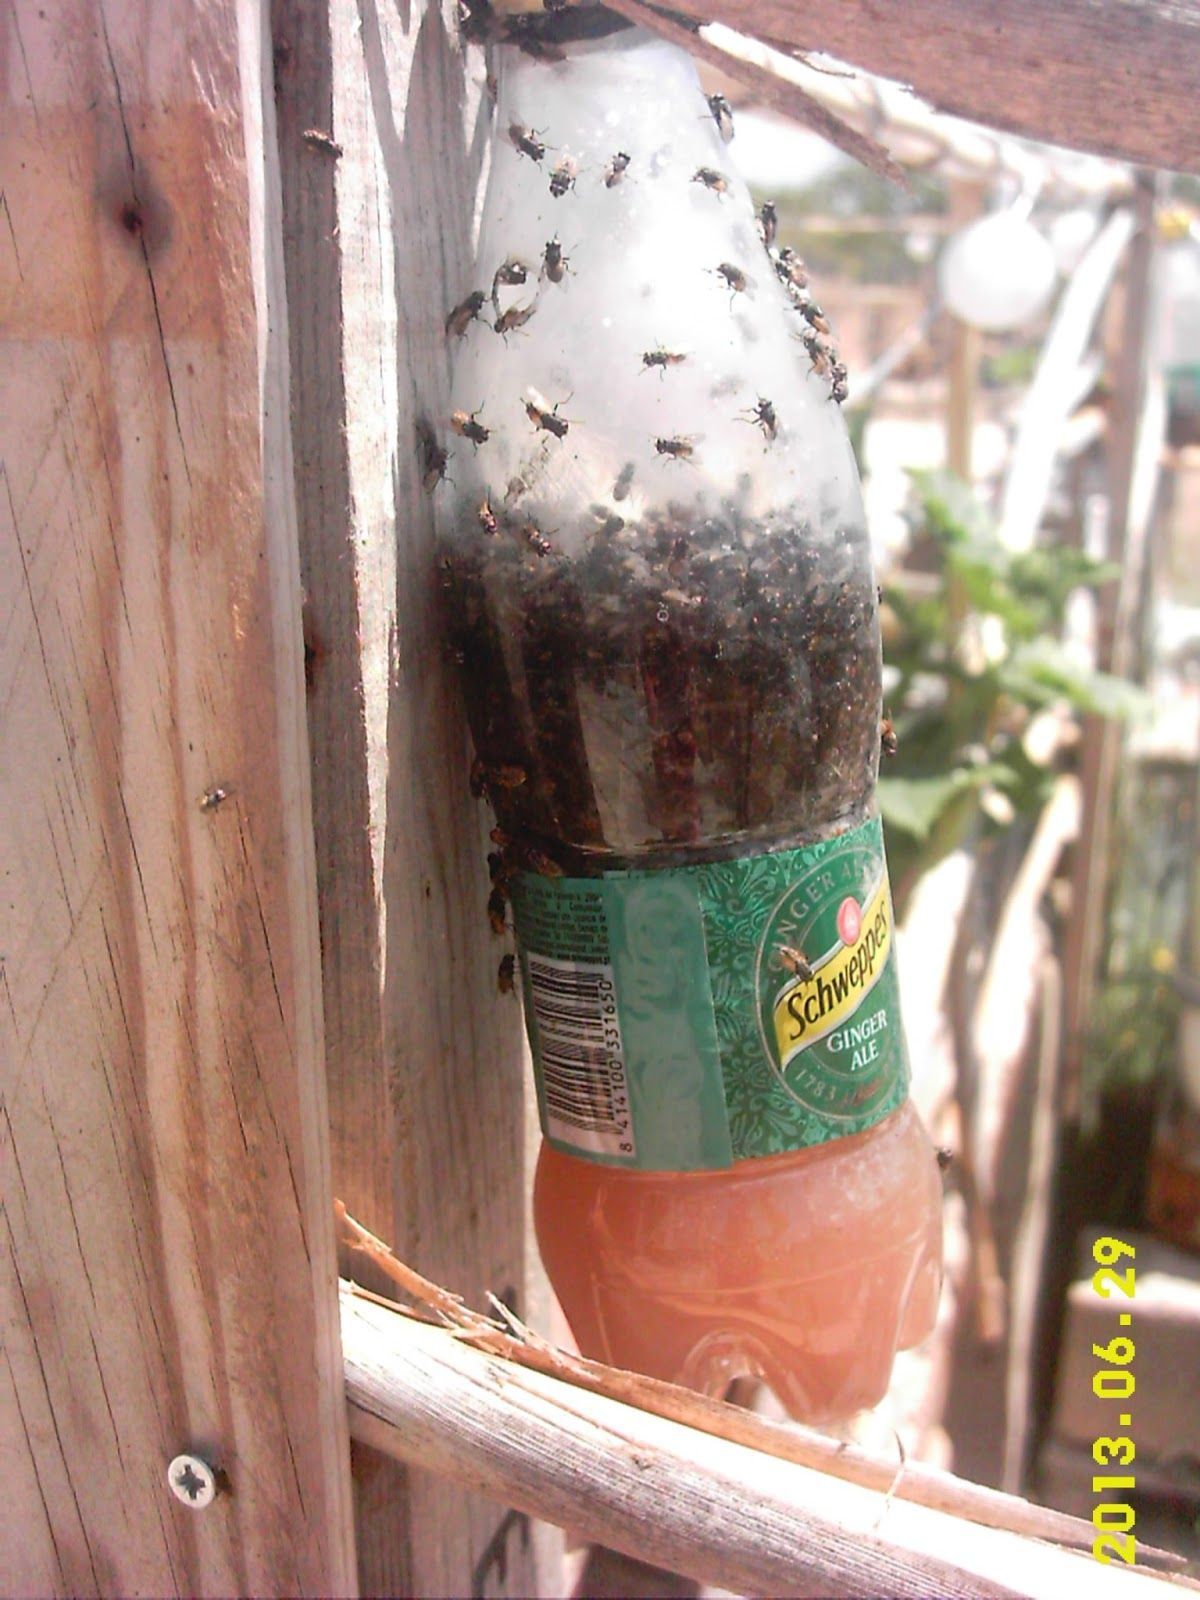 Outdoor fly problem...old method for reducing flies. Fly